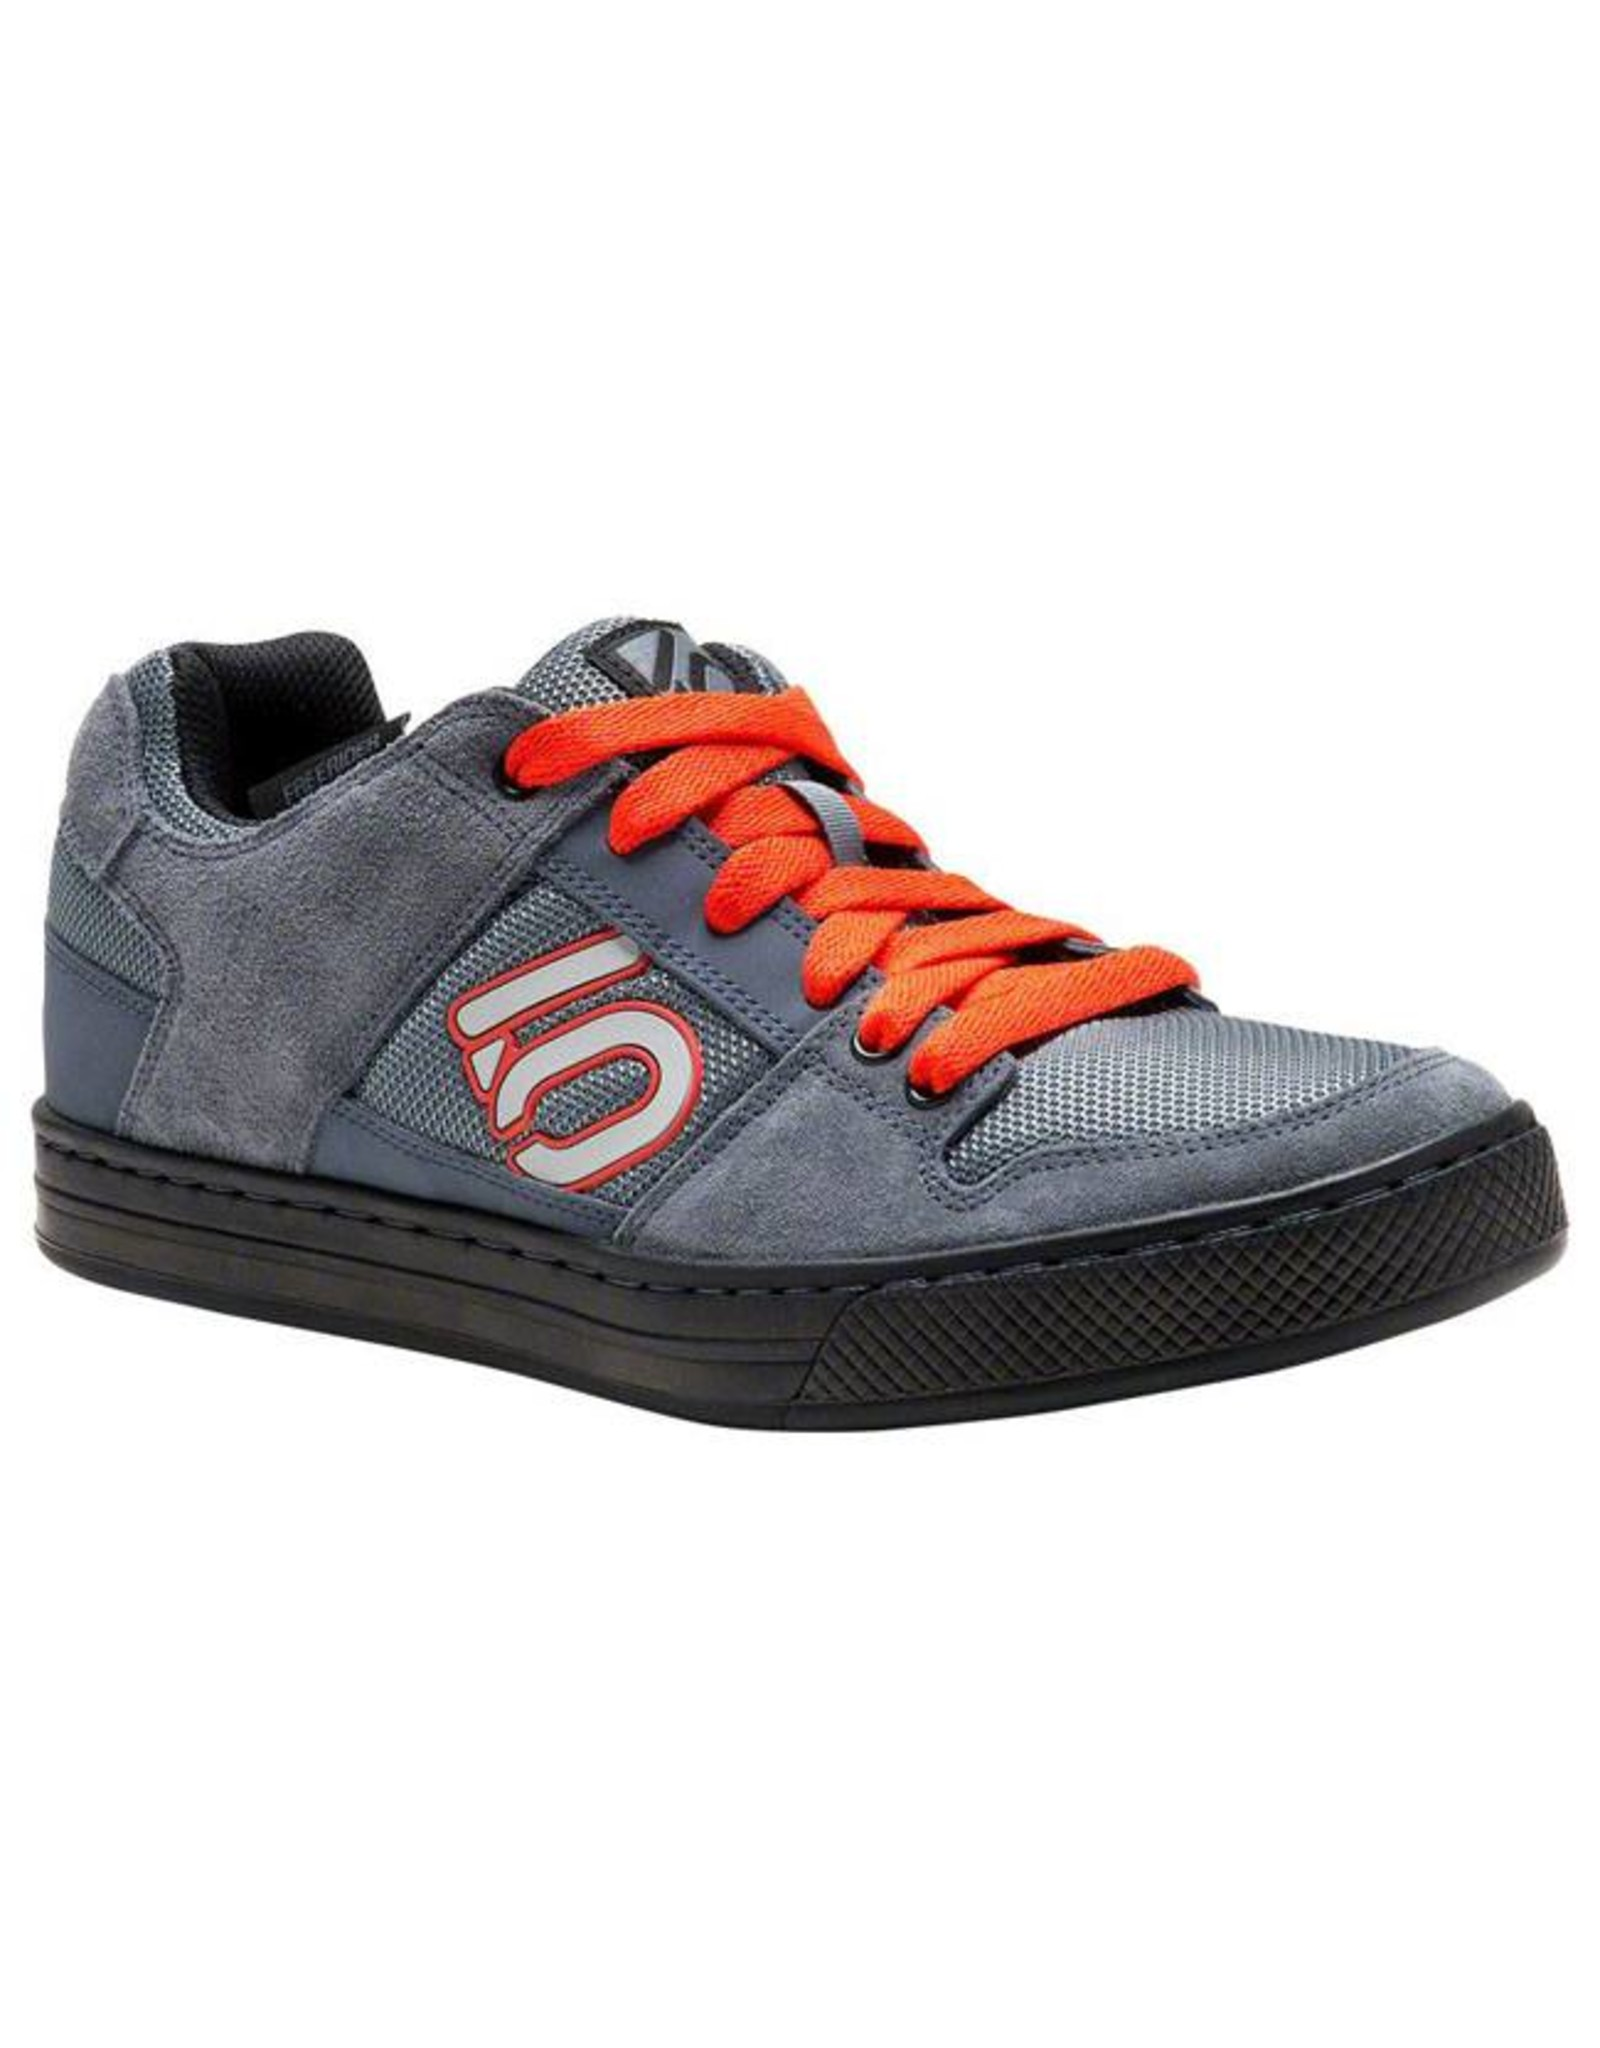 Five Ten Five Ten Freerider Men's Flat Pedal Shoe: Gray/Orange 9.5